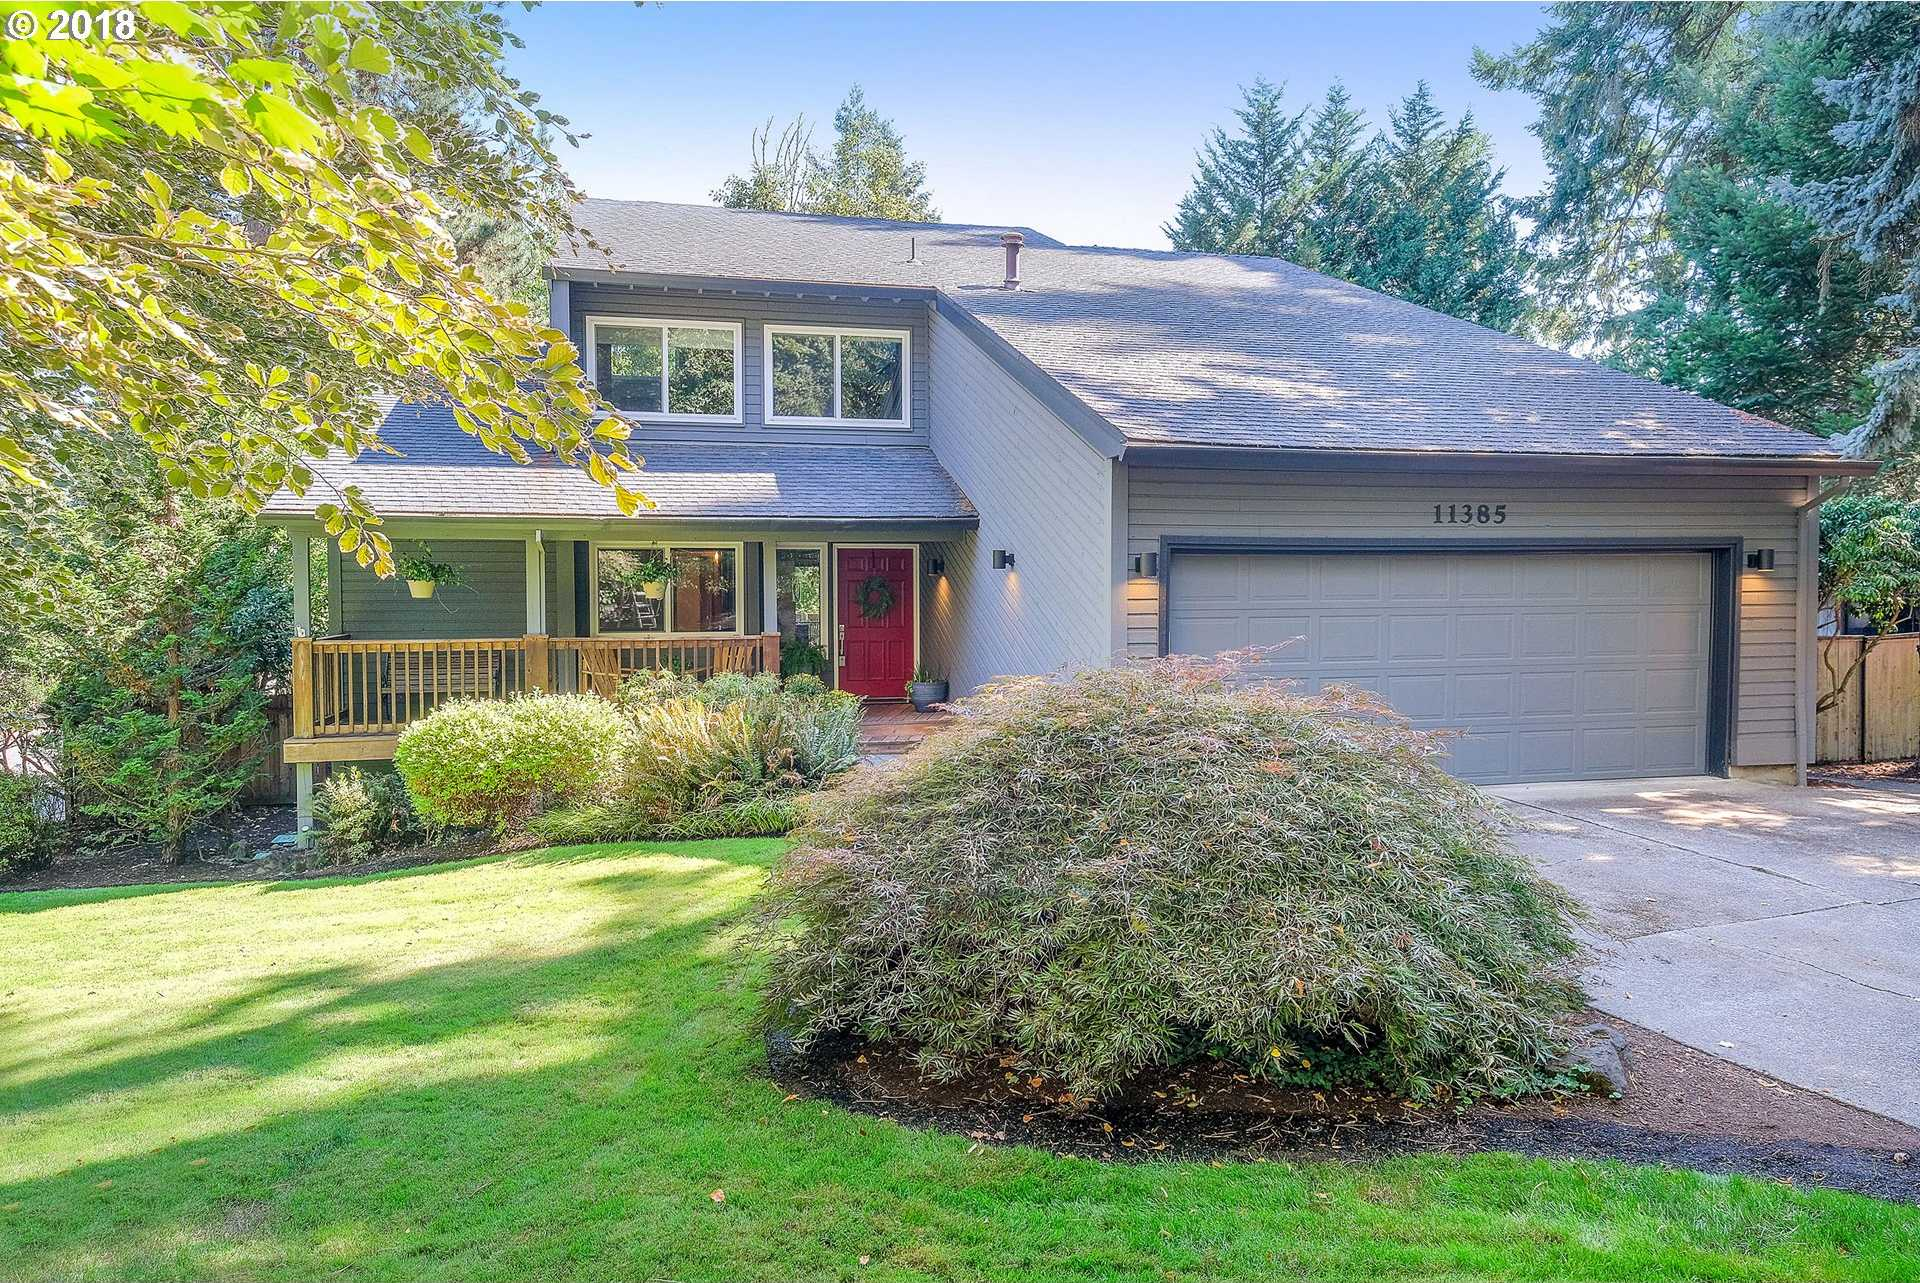 $475,000 - 3Br/3Ba -  for Sale in Tigard